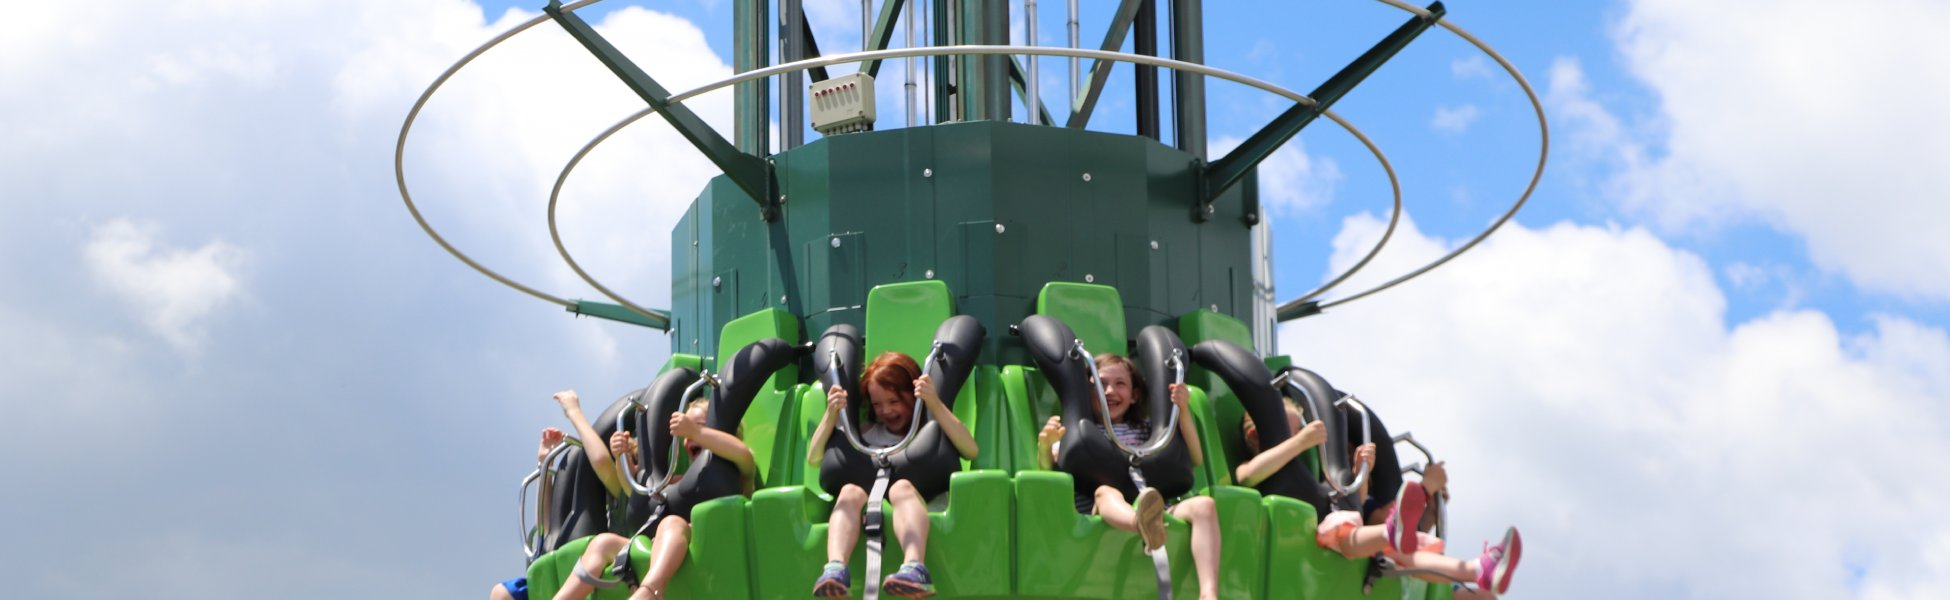 Rides Attractions Edaville Family Theme Park